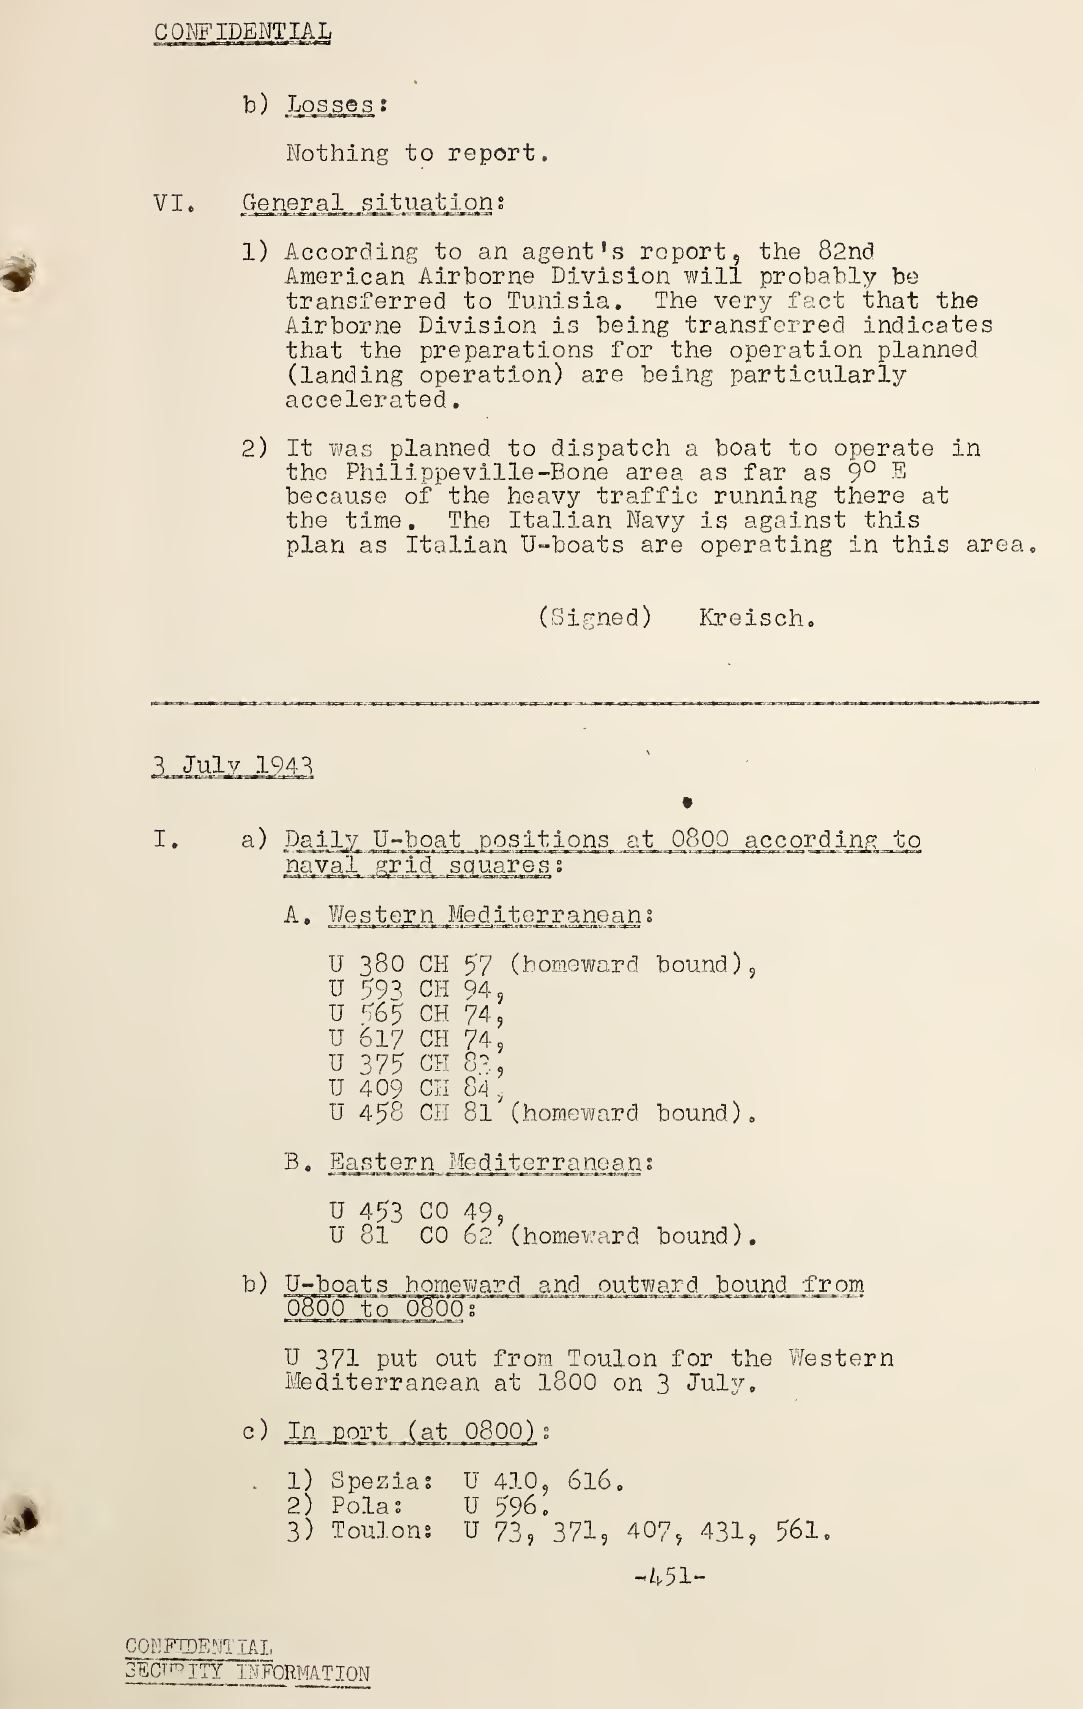 War Diary of Captain U-Boats Sample Entry 2